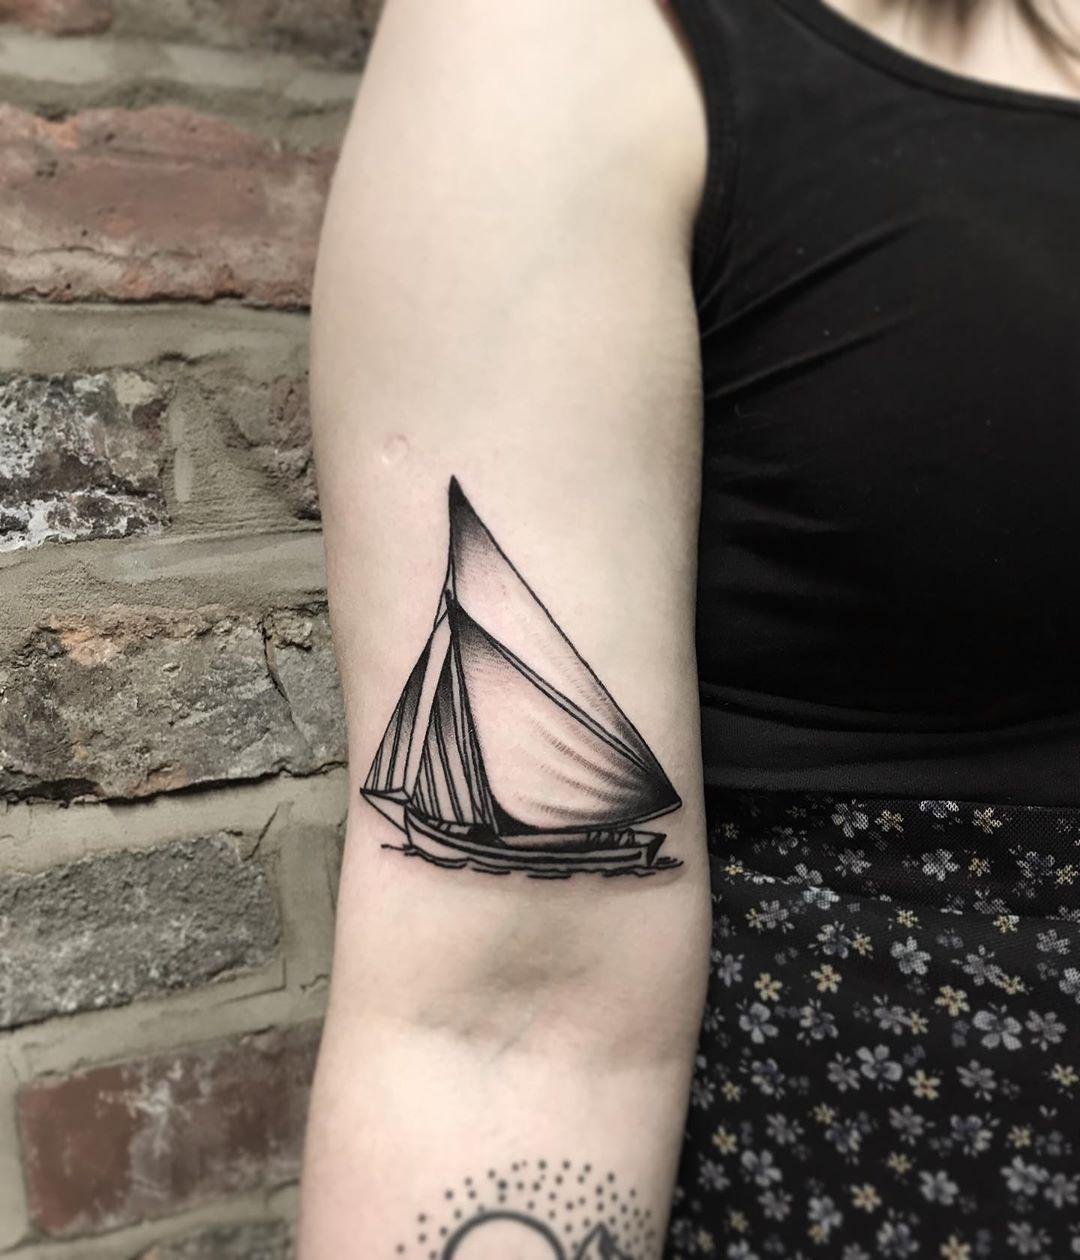 Galway hooker tattoo by @lonewolftattoo